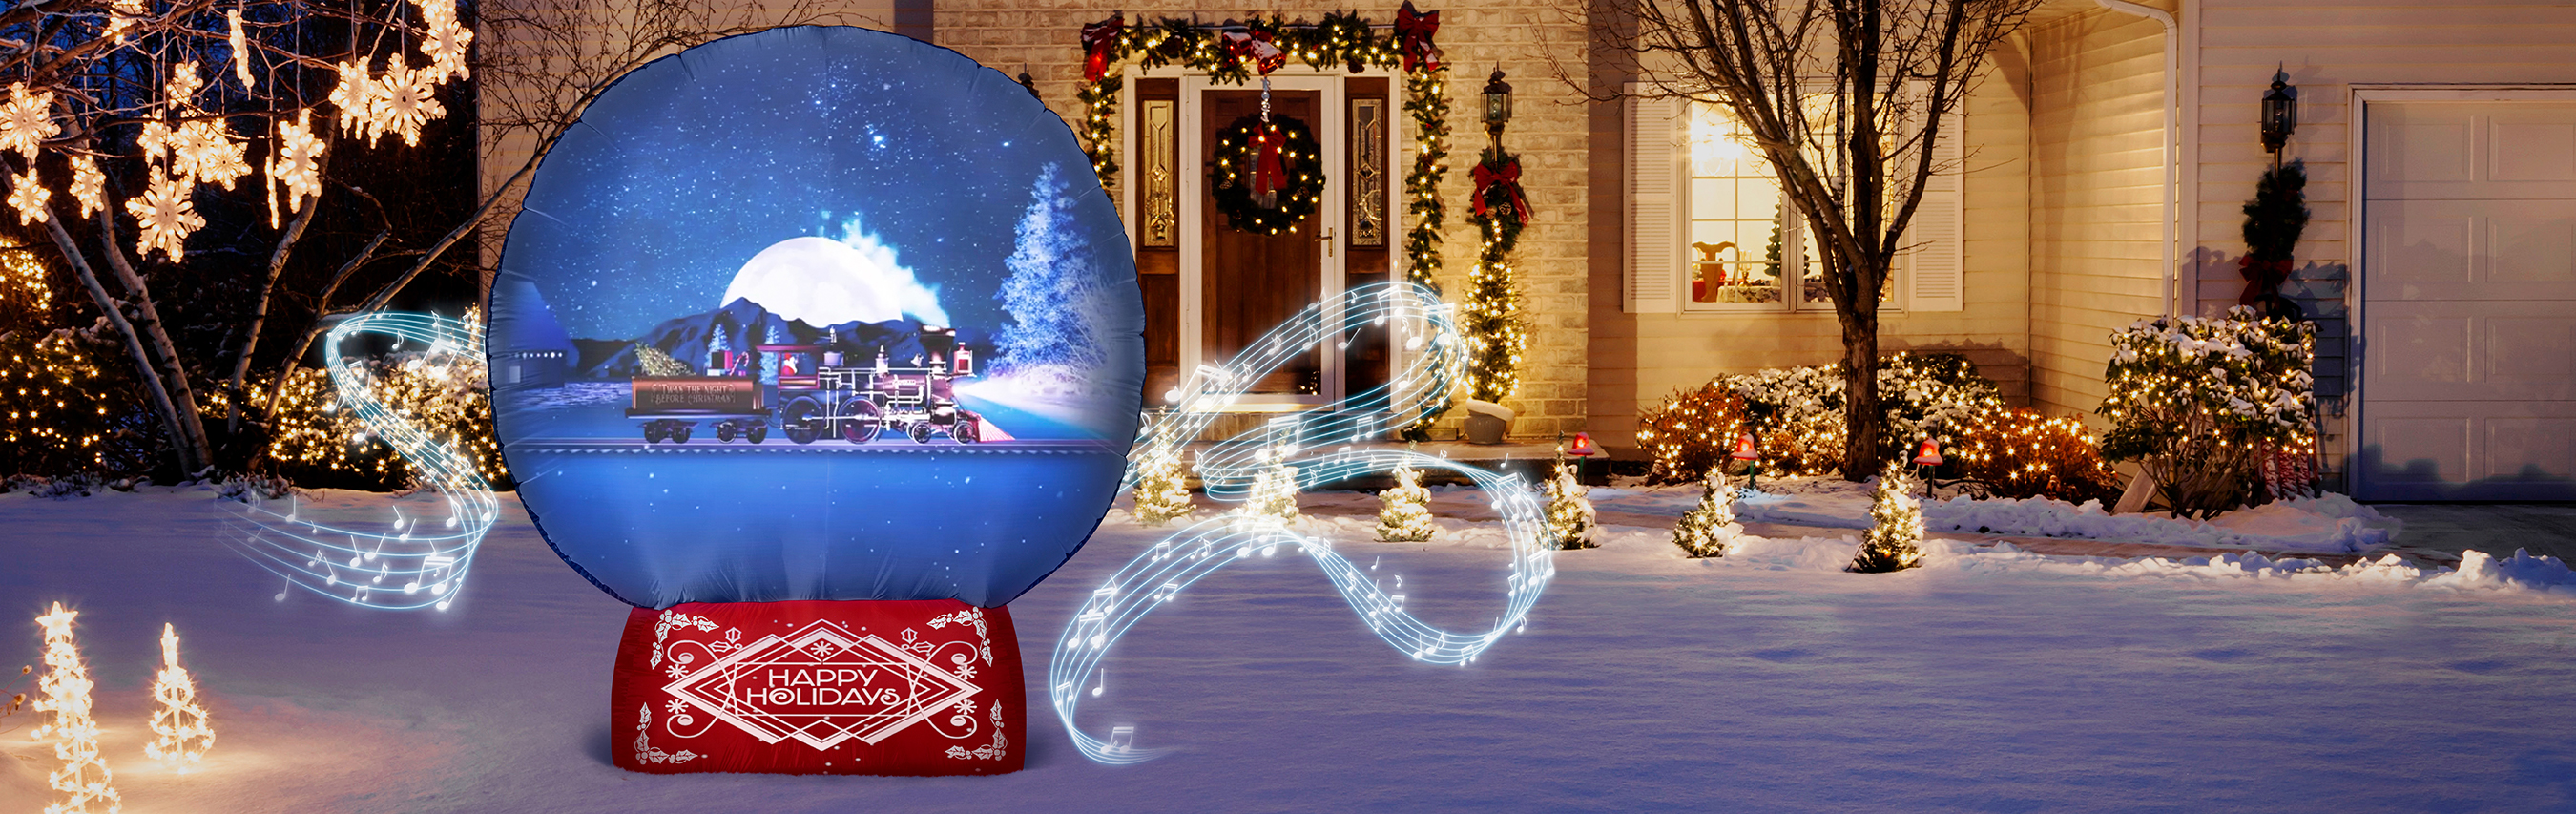 Christmas Scenes.Introducing Living Projection For Halloween And Christmas